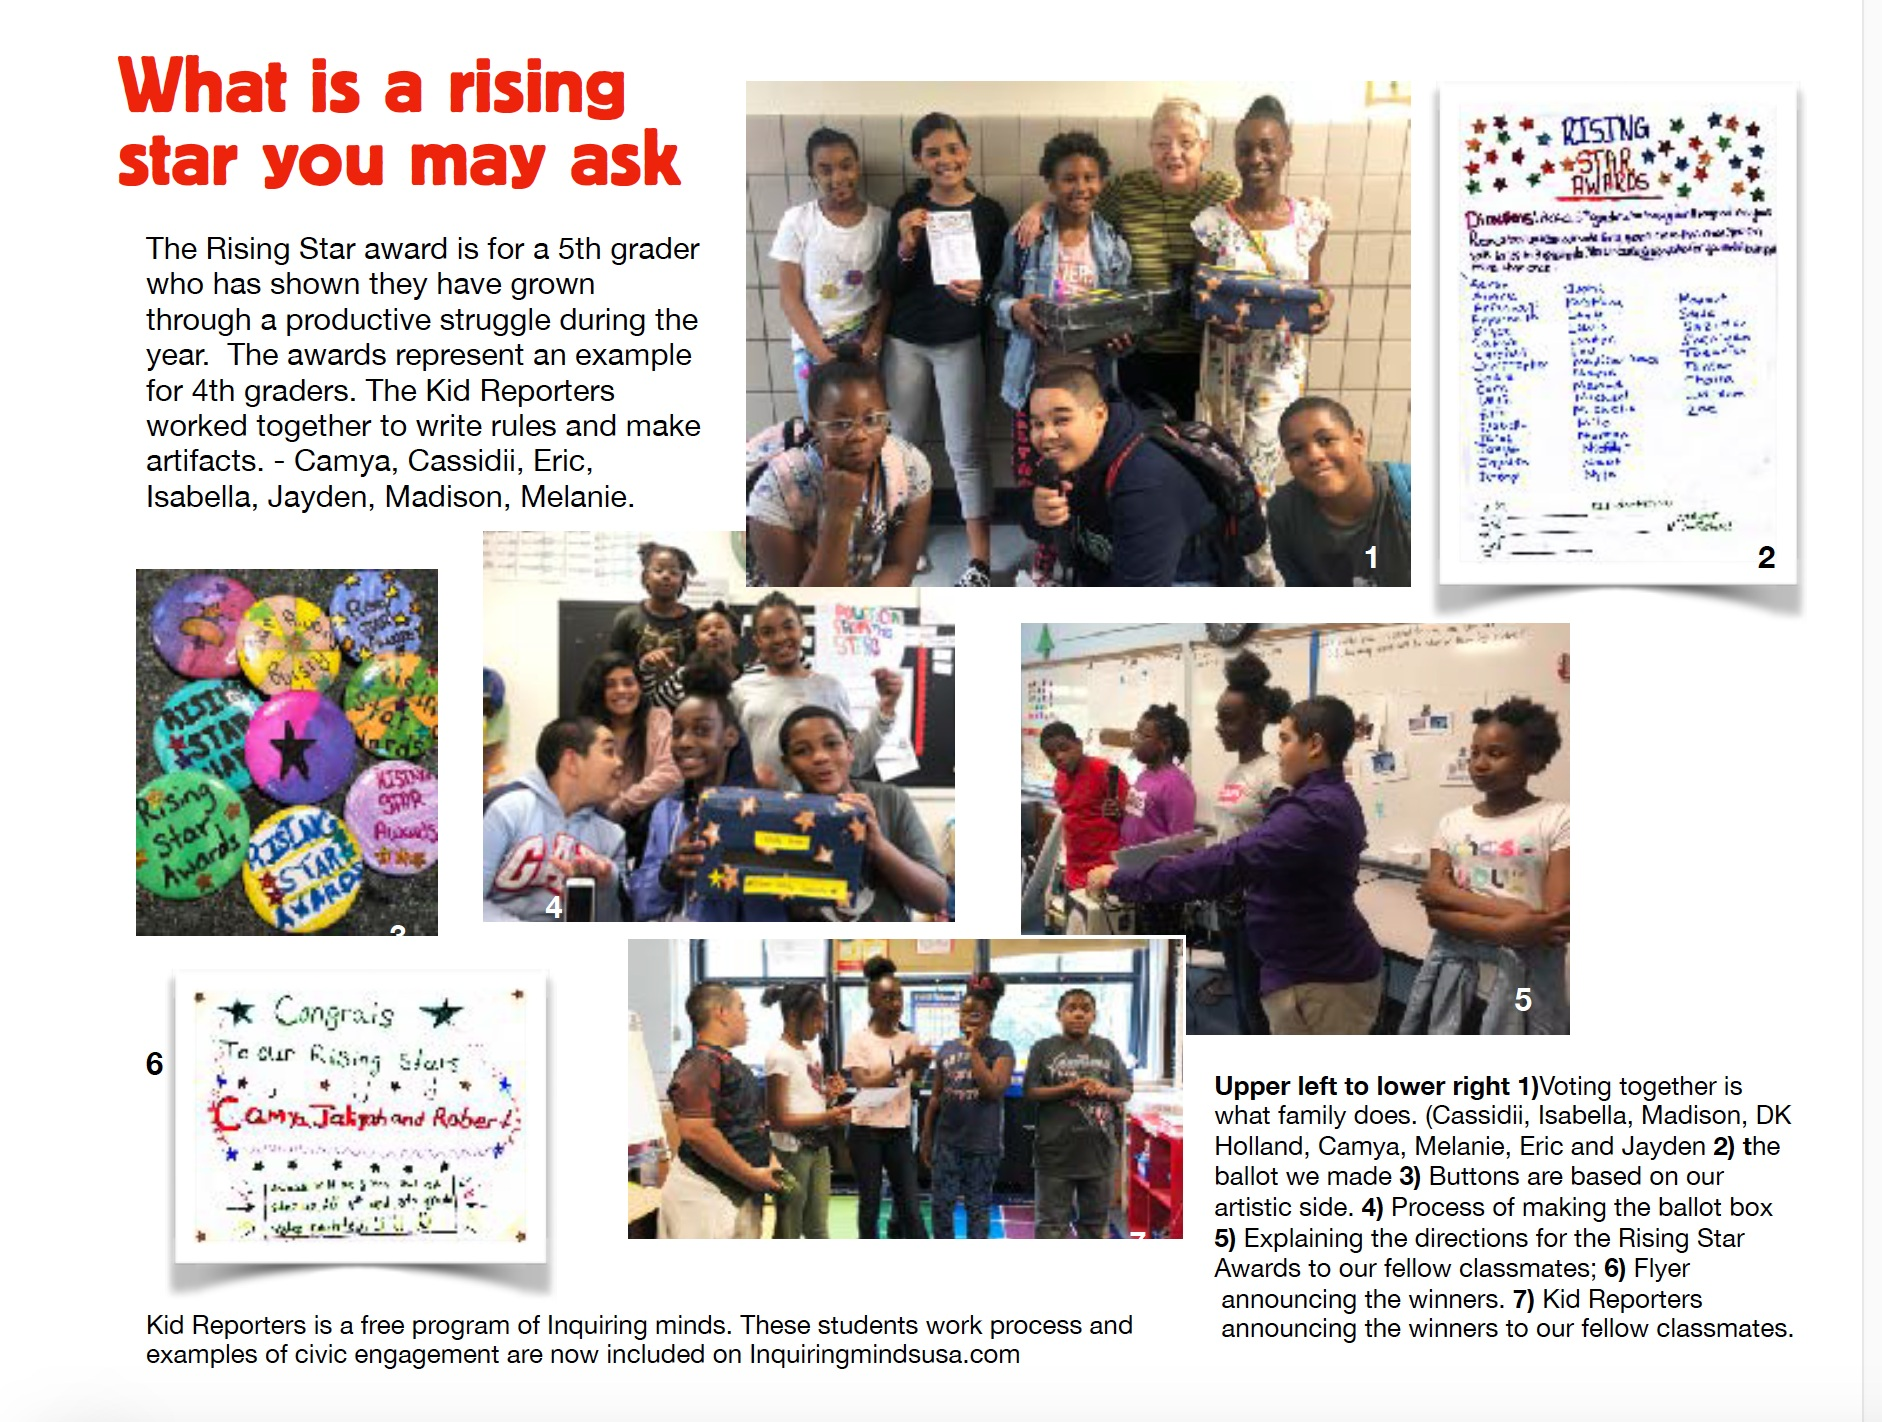 The students wrote and edited this one page article which (layout by Inquiring Minds) was printed by the PTA and distributed to all 4th and 5th graders as well as adults who attended graduation.